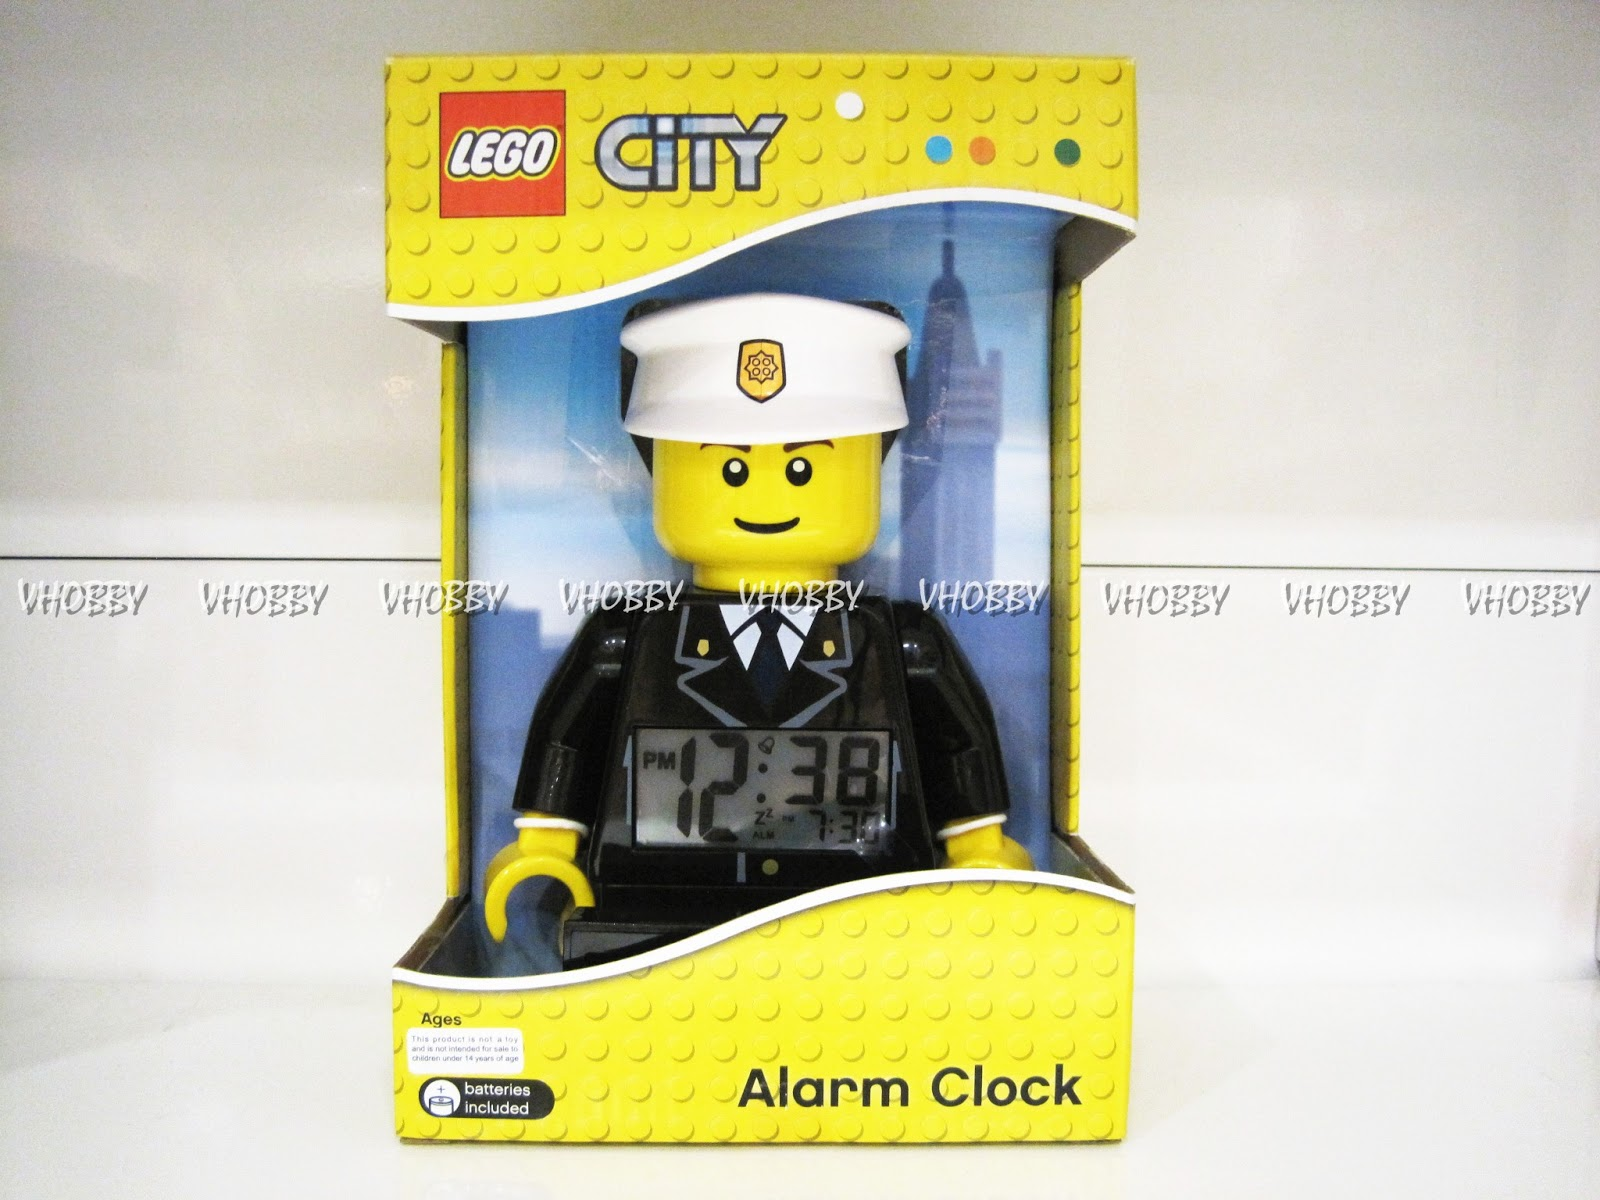 Vhobby Lego Alarm Clock Led Torch Led Head Lamp Amp Led